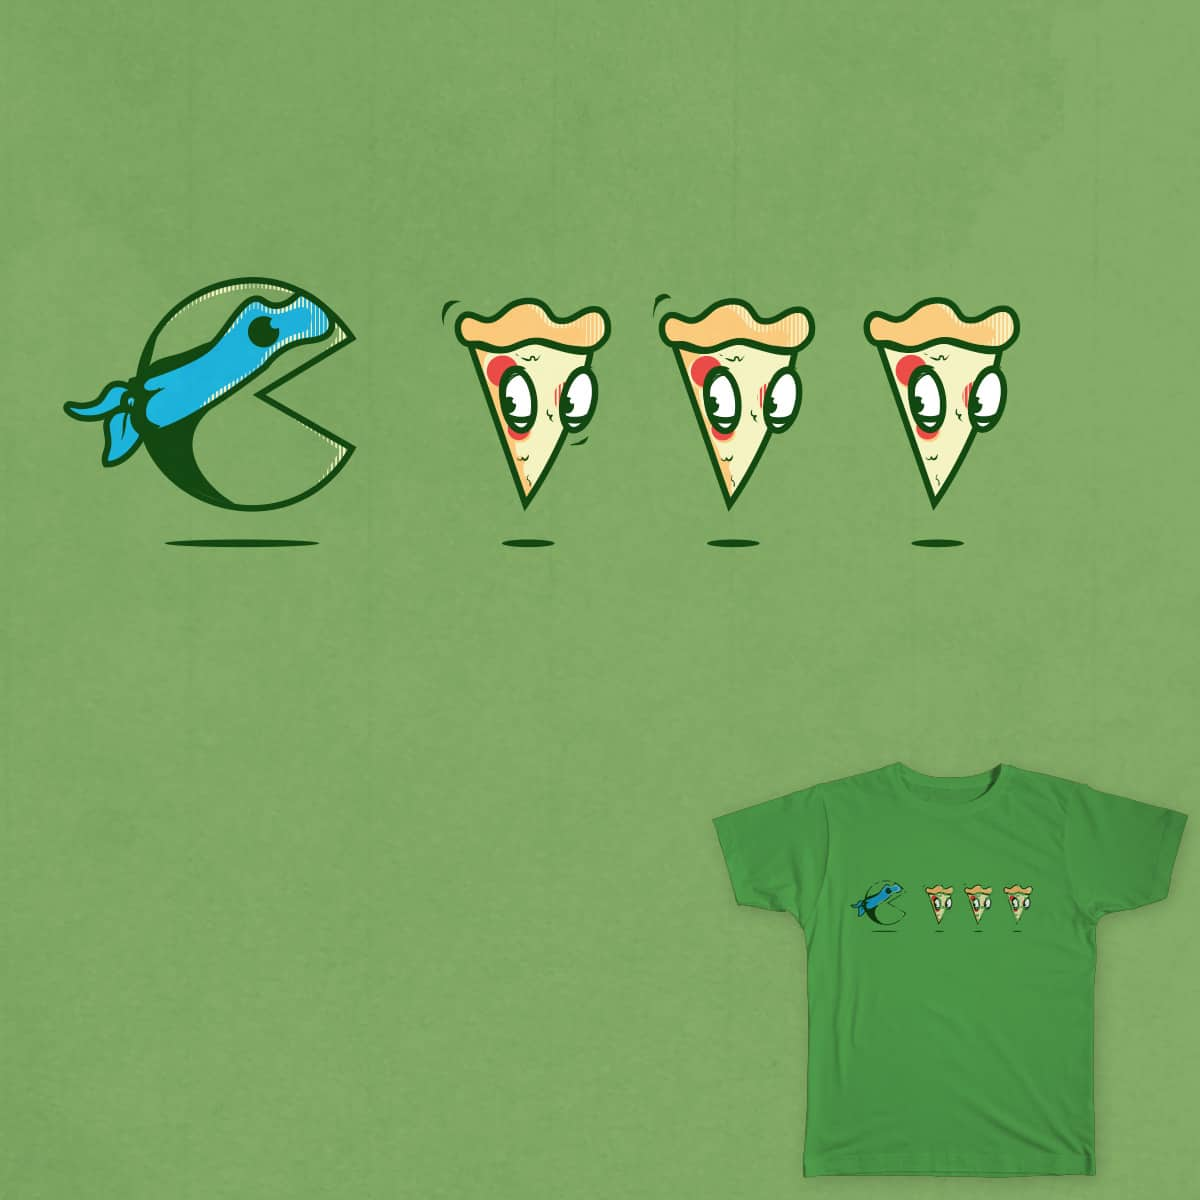 PacTurtle by Donniiie on Threadless